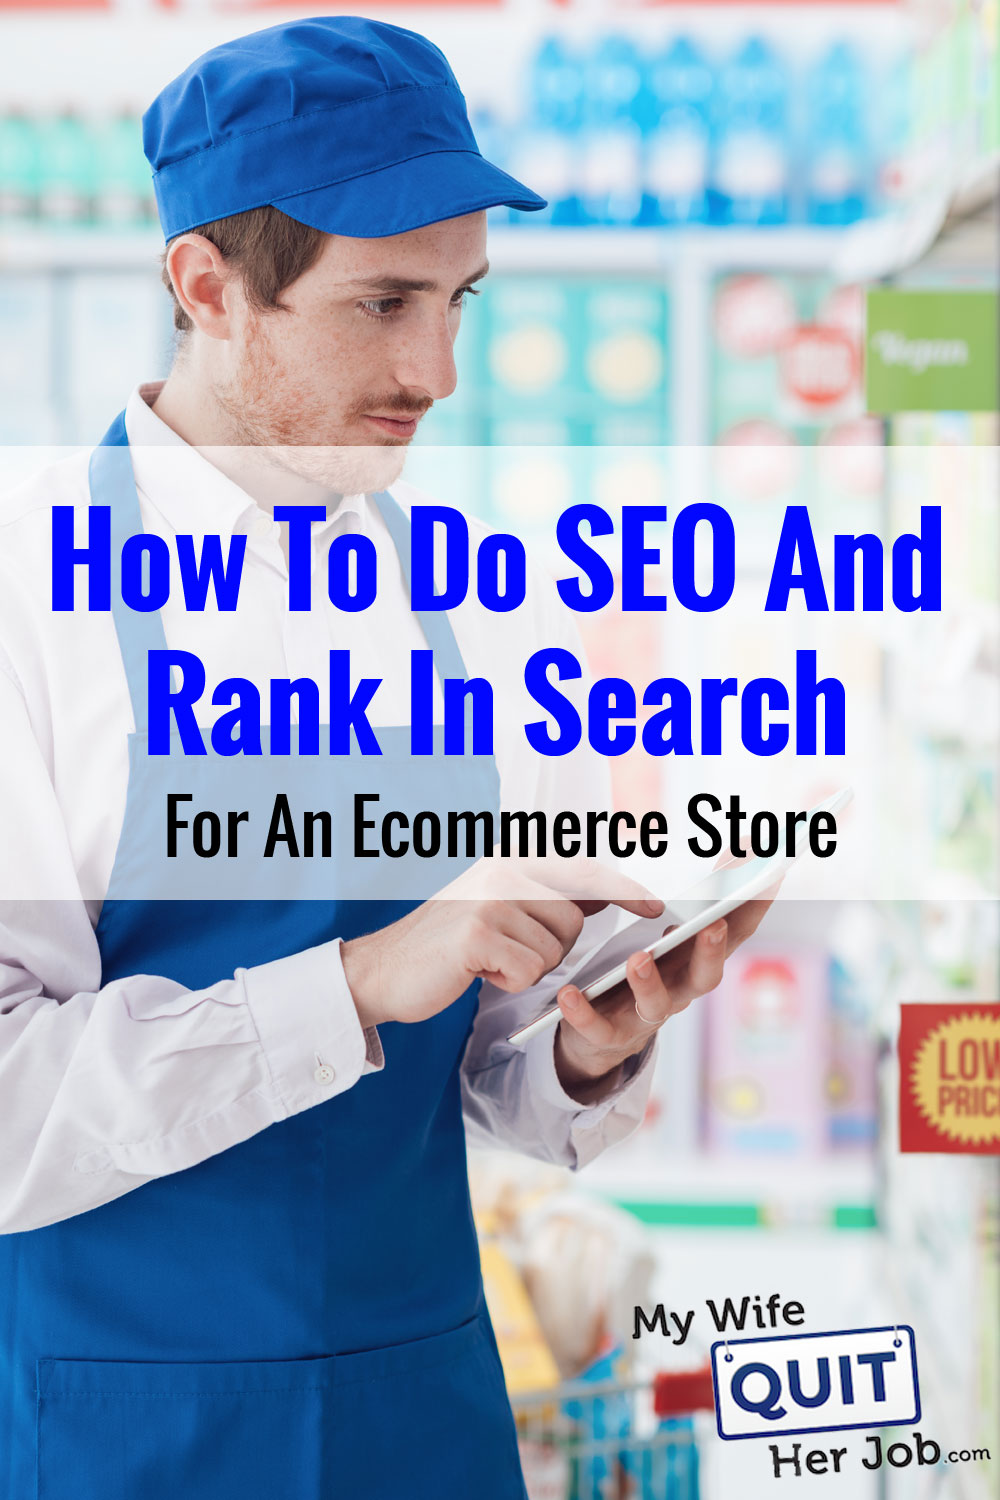 How To Do SEO And Rank In Search For An Ecommerce Store